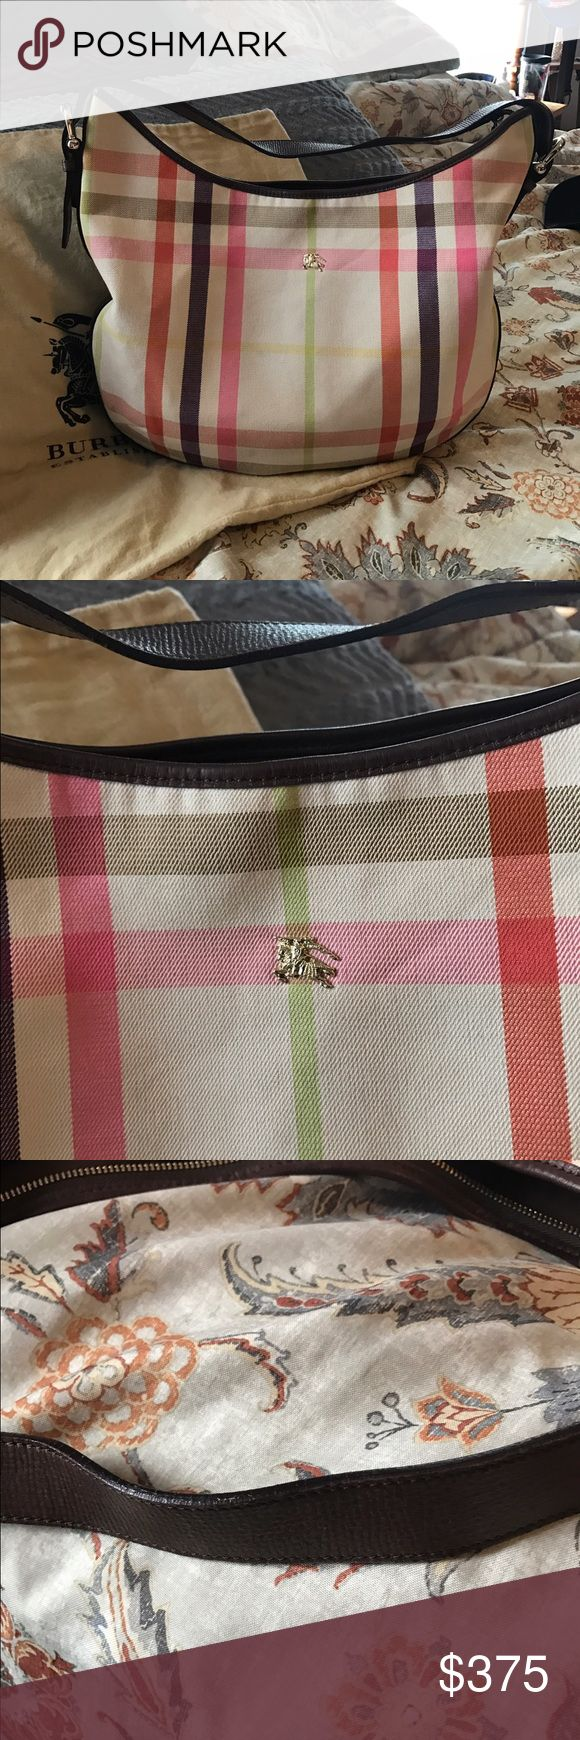 Authentic Burberry summer hobo Time to get ready for summer girls. This is the bag for you. Excellent condition. Has a couple of small dirt spots but can't see them unless your looking. No rips or tears. This is a very large bag. Comes with dust bag.  This is one of the best prices for this style on Poshmark Burberry Bags Hobos